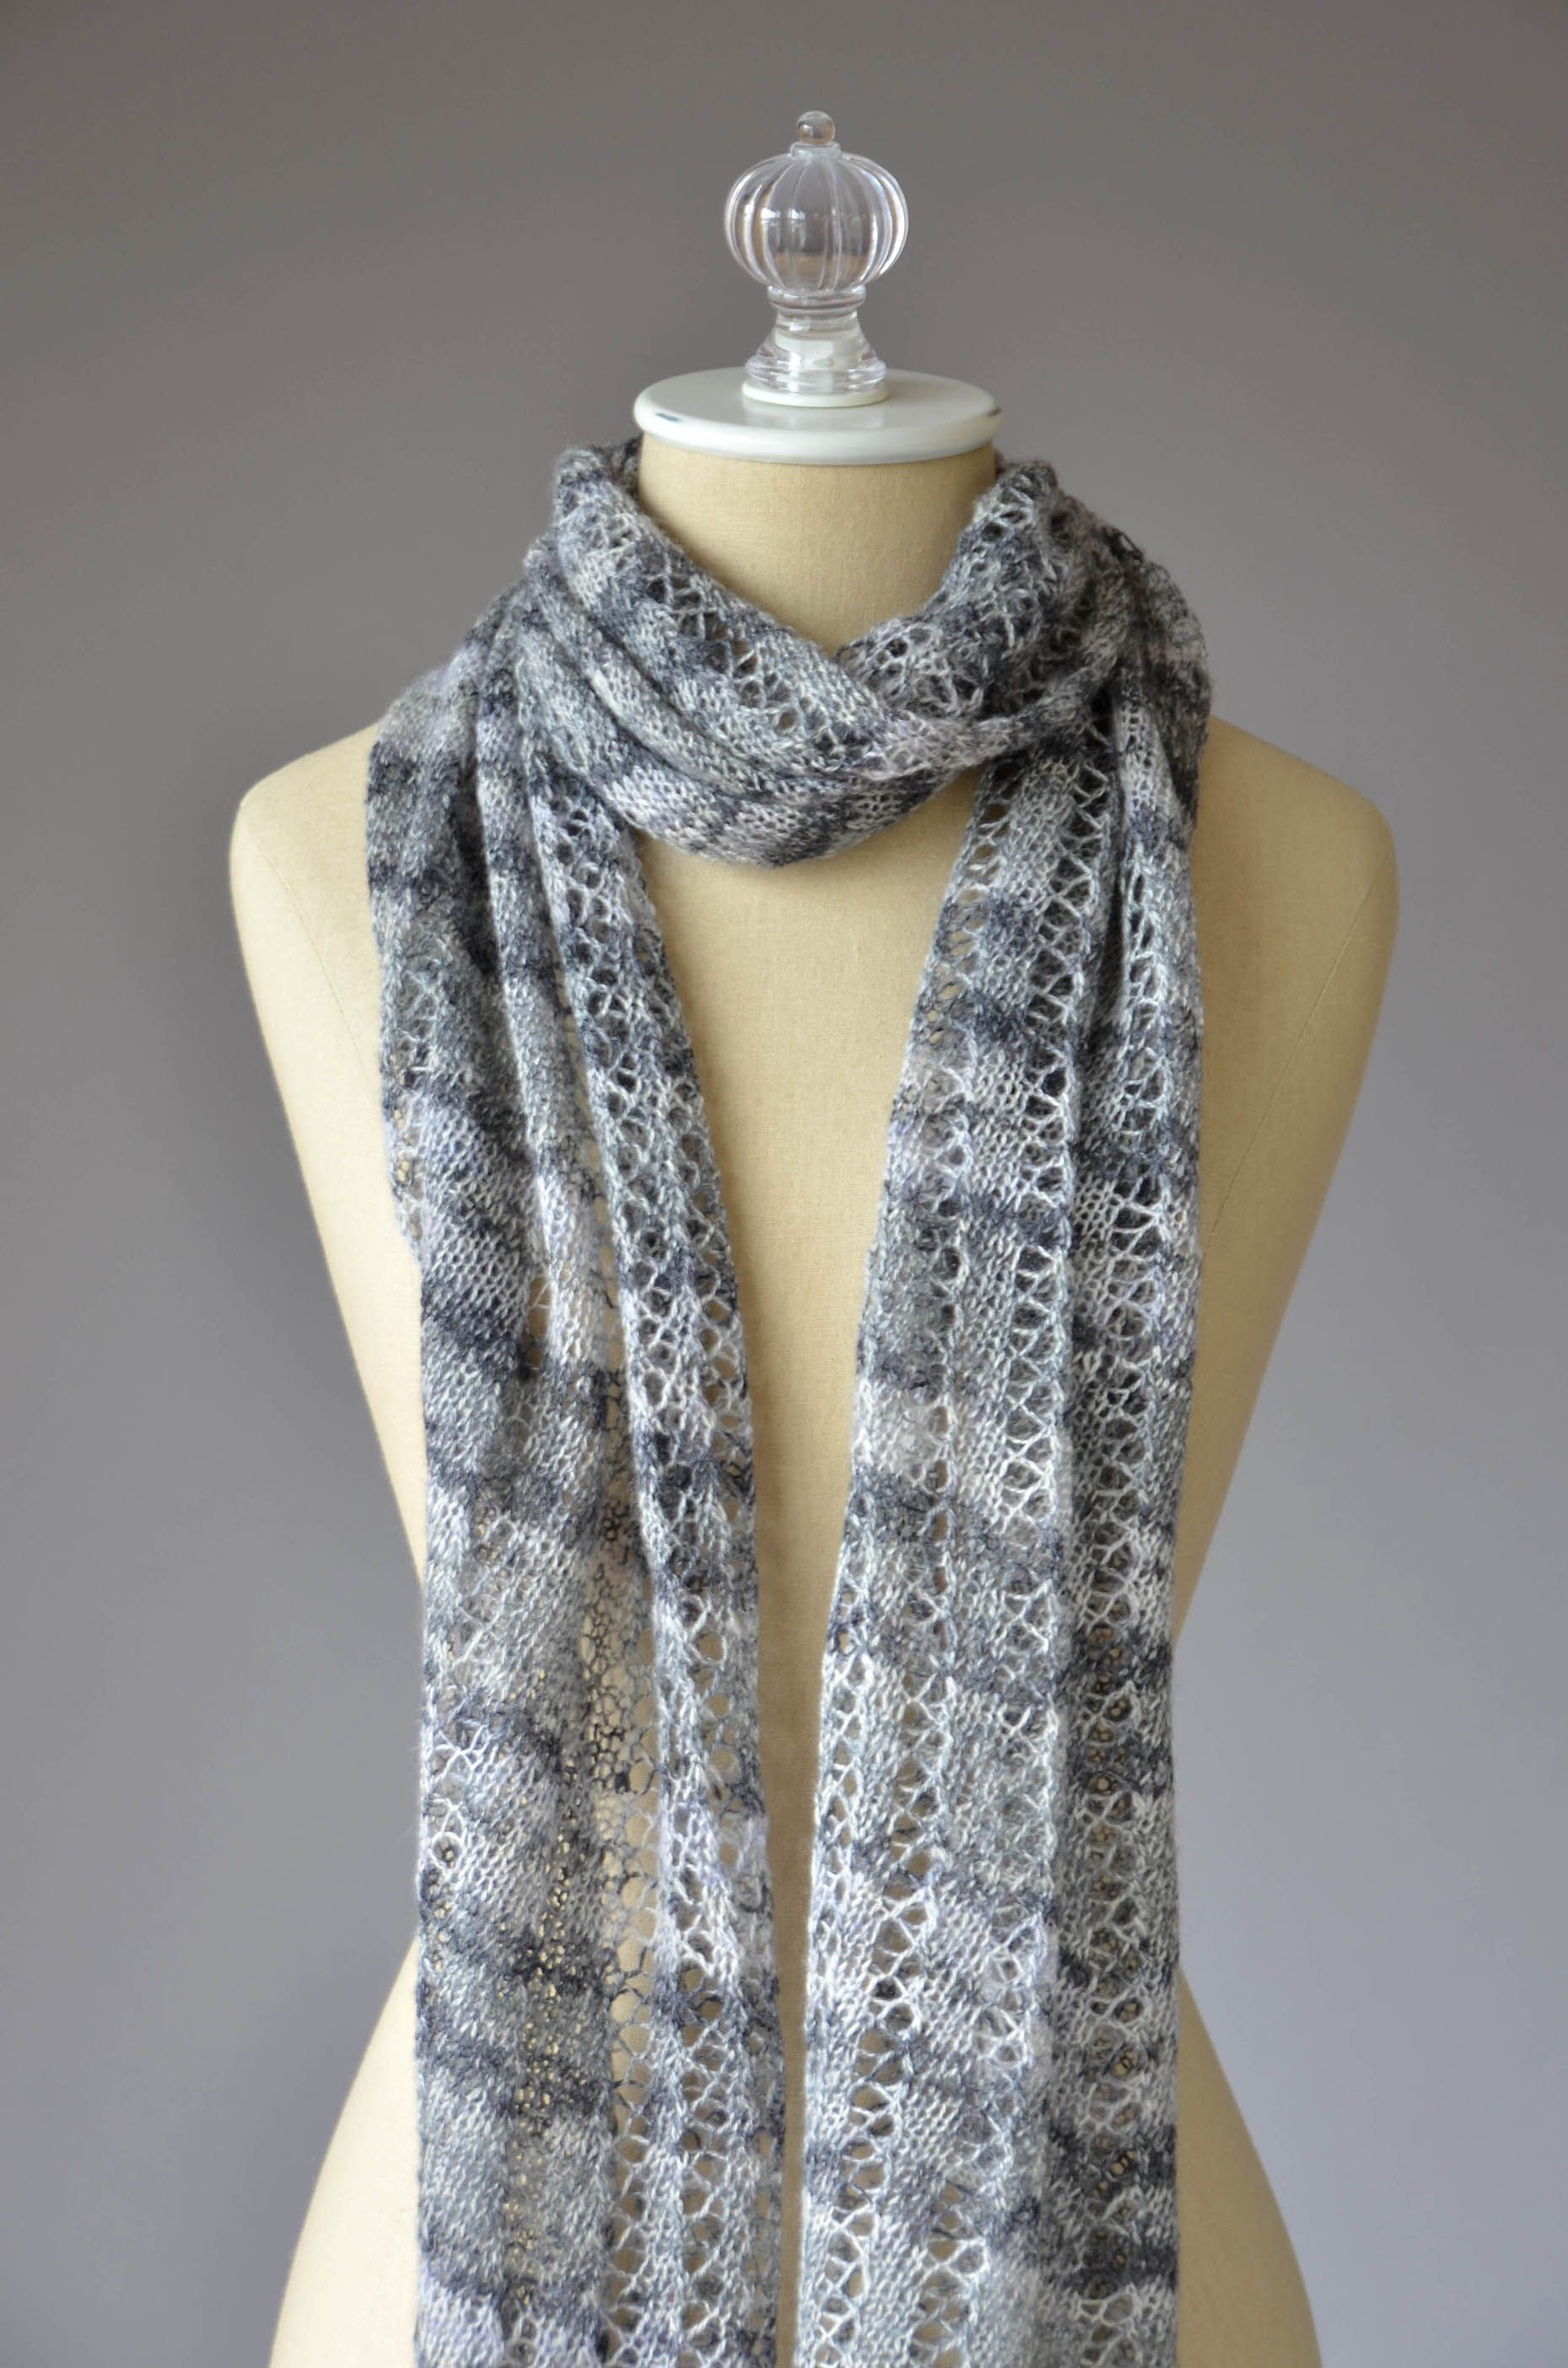 Free pattern friday augustine scarf knit in fibra natura whisper free pattern friday augustine scarf knit in fibra natura whisper lace bankloansurffo Choice Image